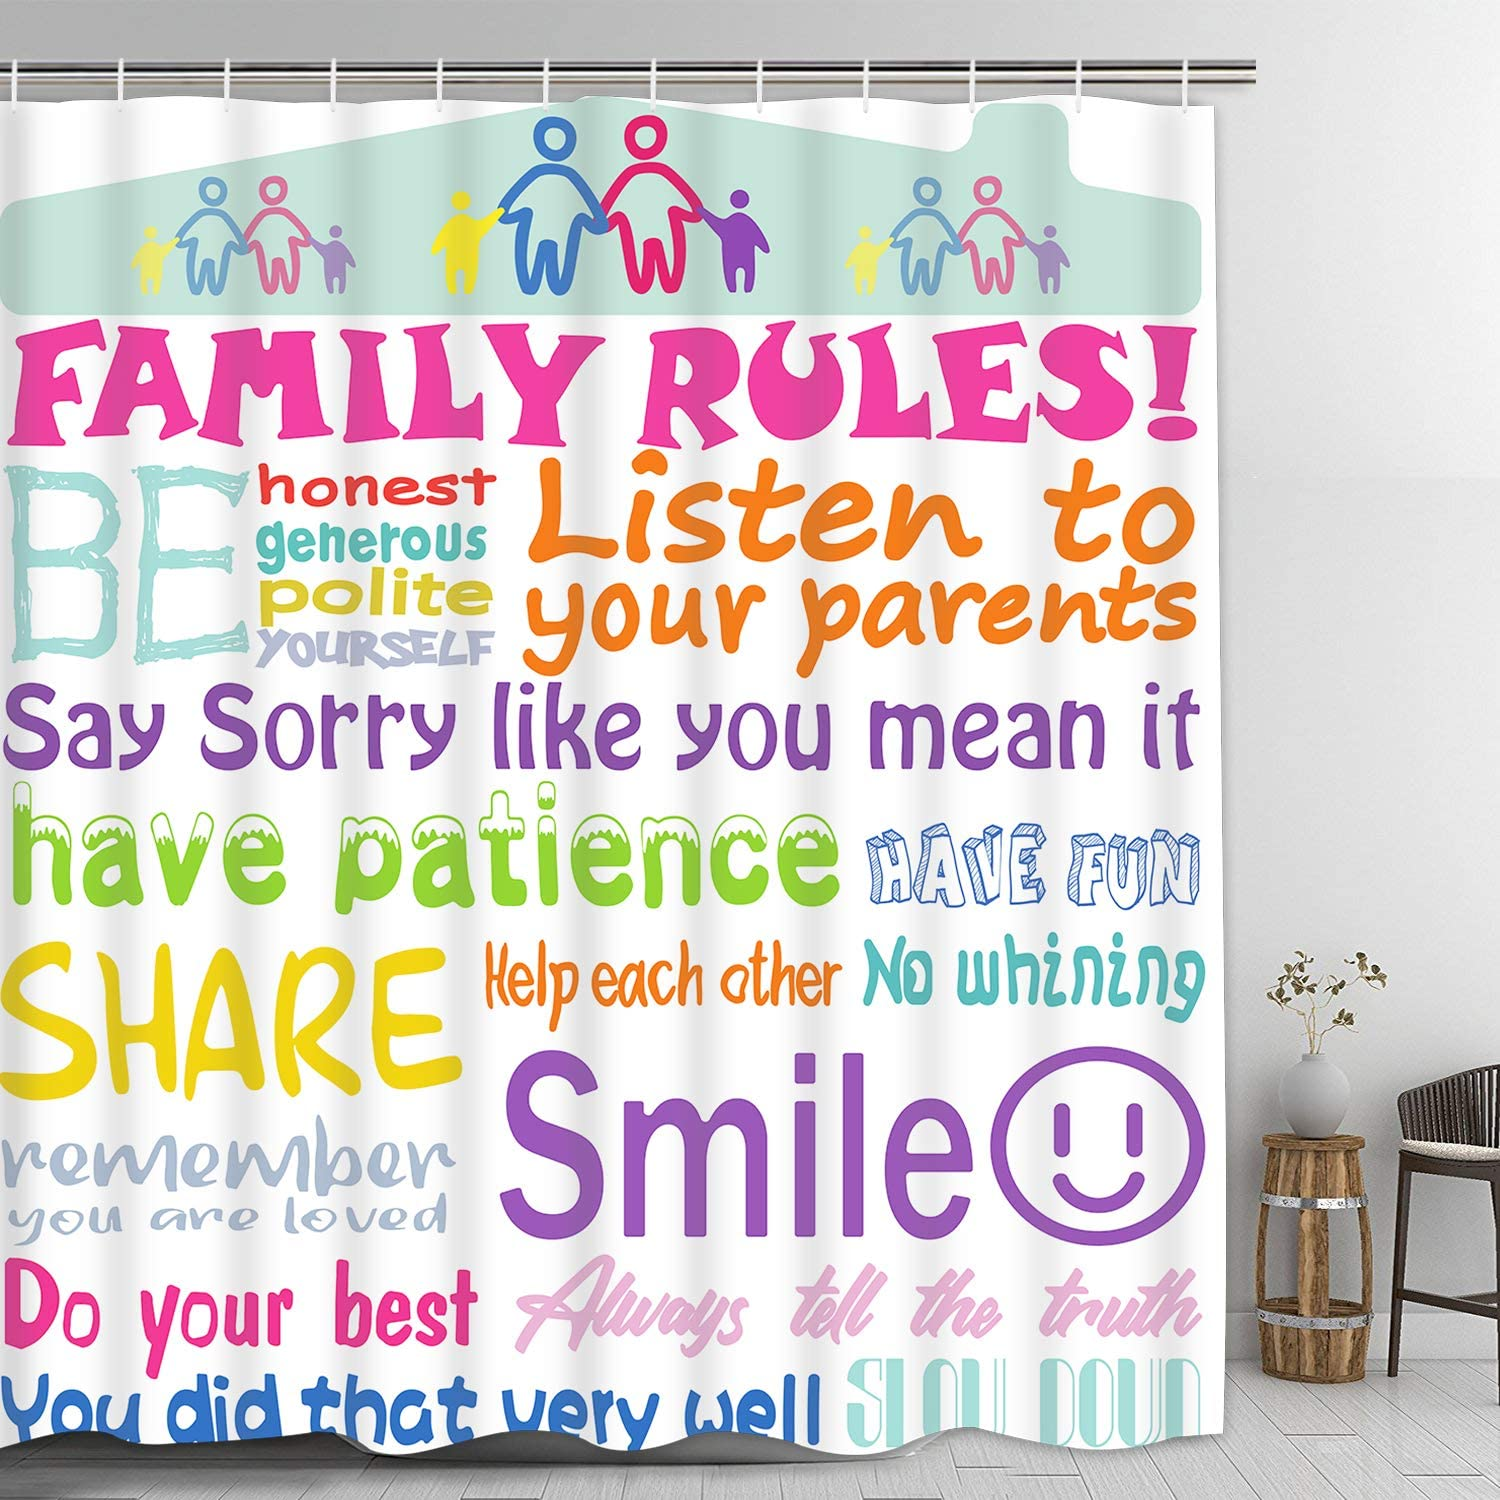 Family Rules Shower Curtain with 12 Hooks, Colorful Words Shower Curtain, Bathroom Rules Shower Curtain for Kids, Waterproof Fabric Bath Curtain for Bathroom, 69 x 74 Inches